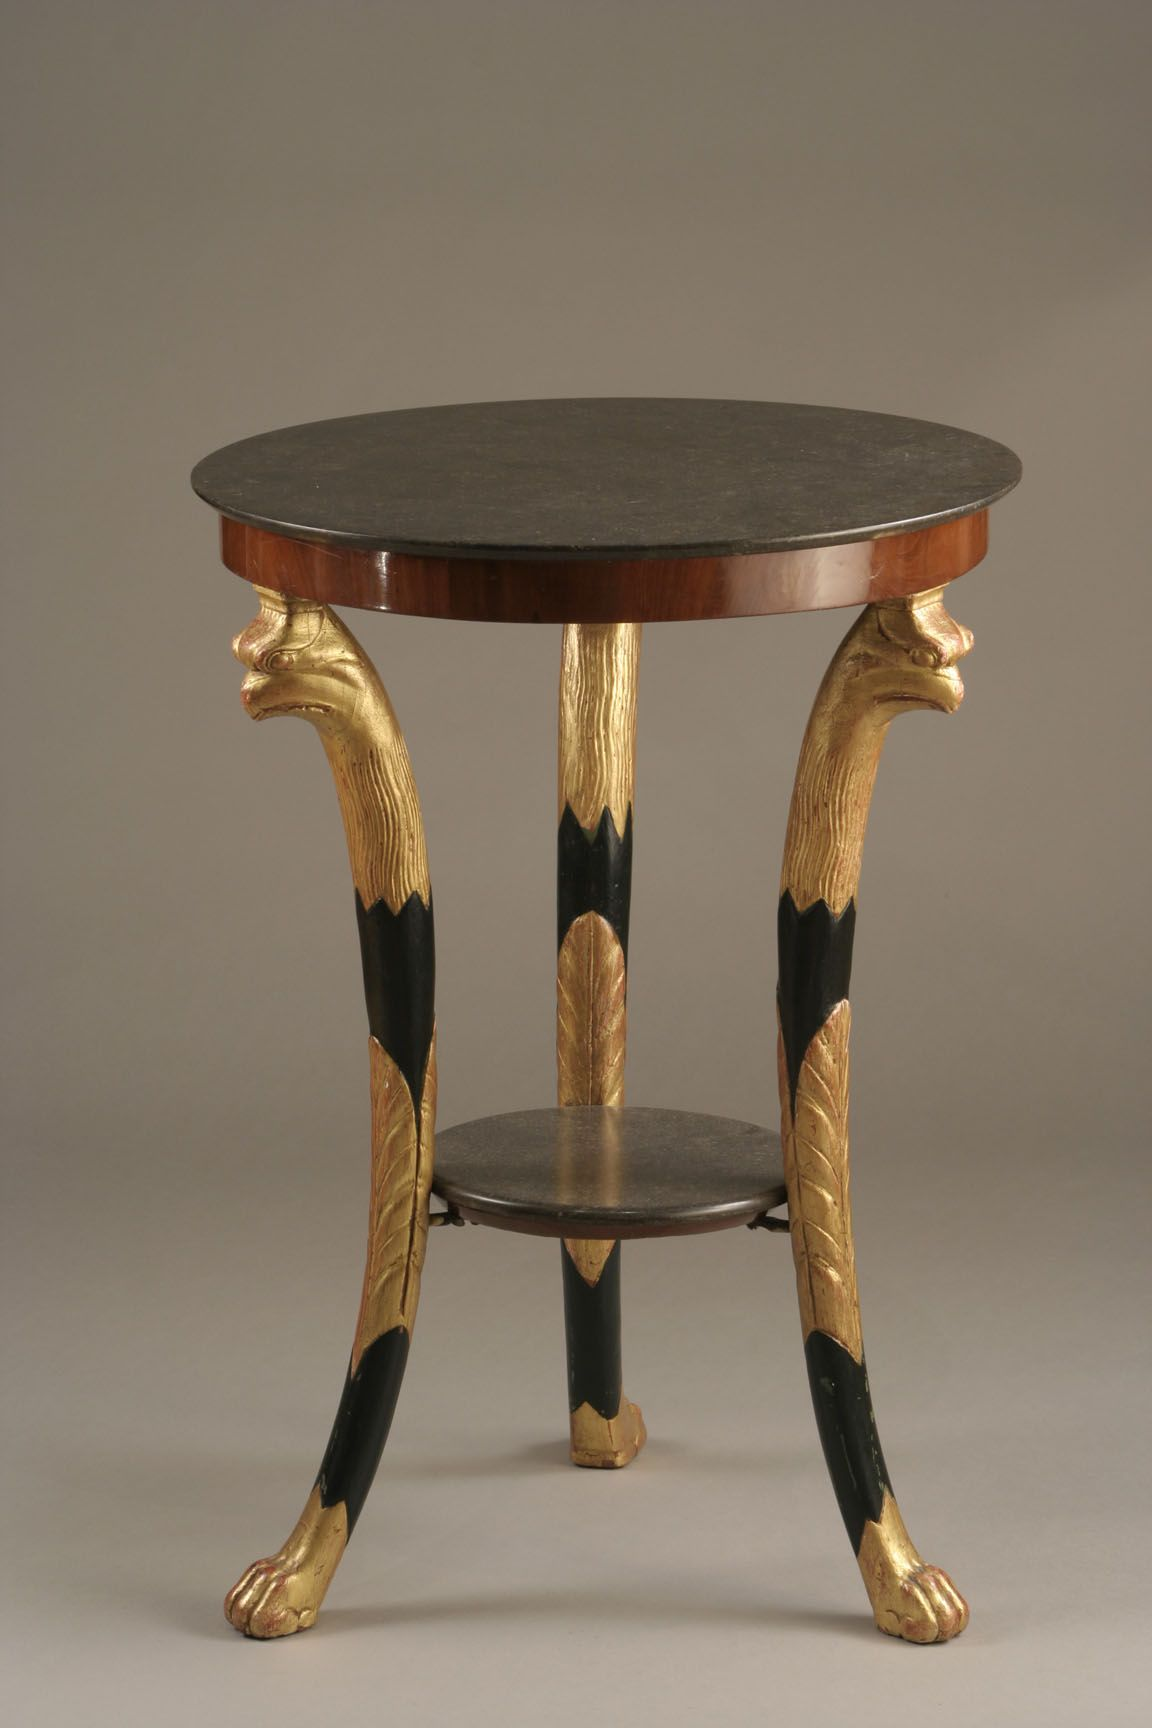 A French Empire pedestal table.  A gilt-wood tripartite feet pedestal table. Apron in mahogany with a Brussels gray marble on top. Three blackened-wood and gilt-wood feet, carved as griffins, and linked by a round tray covered by a smaller gray marble. Circa :1800